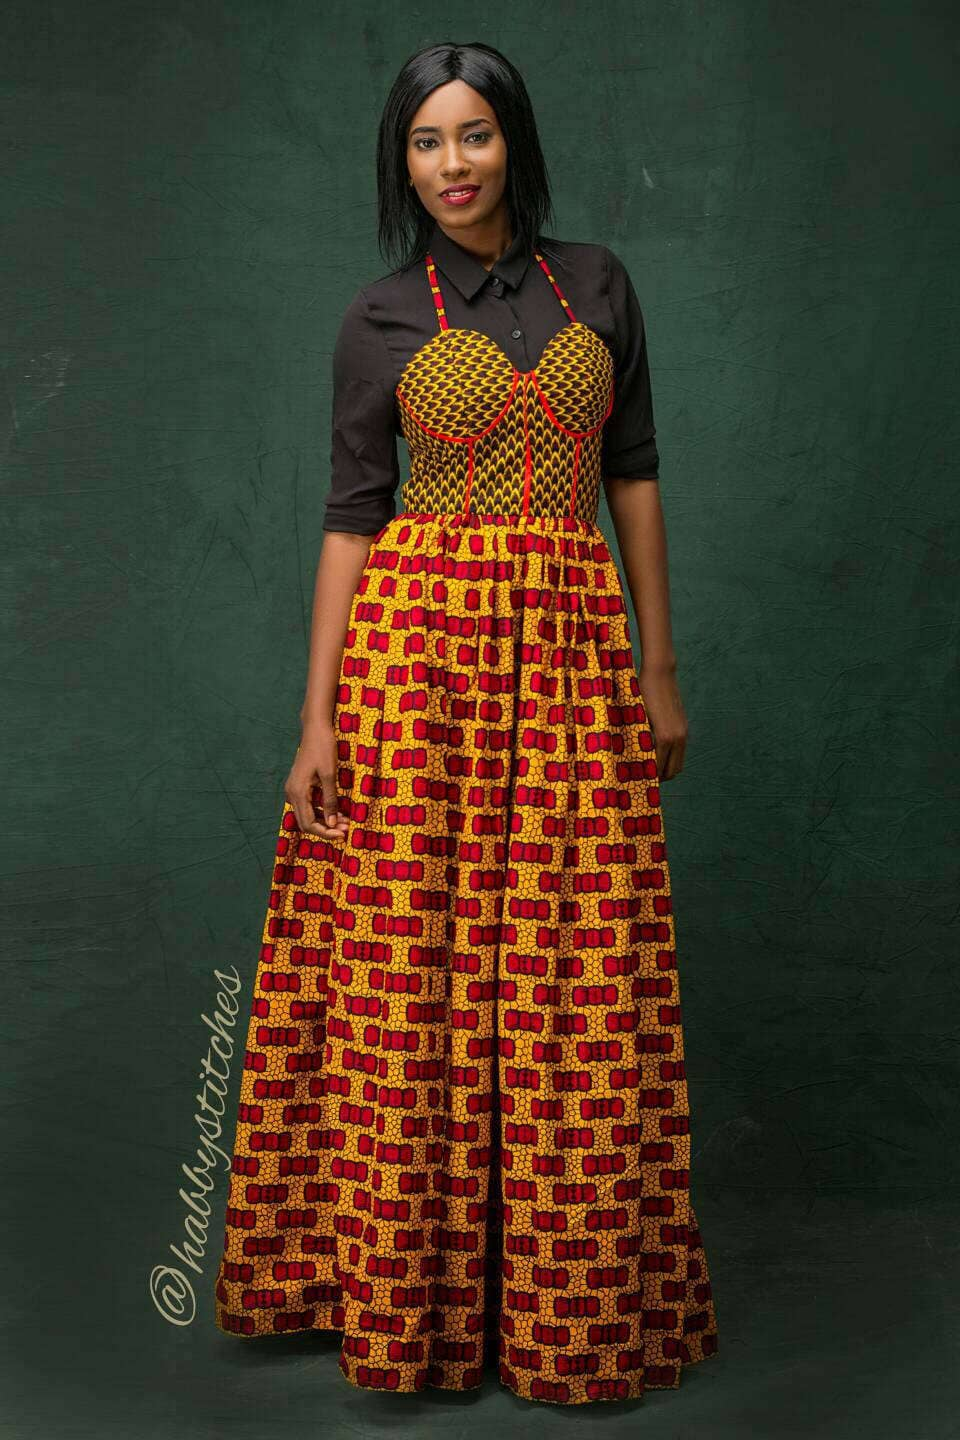 50+ best African print dresses | Looking for the best & latest African print dresses? From ankara Dutch wax, Kente, to Kitenge and Dashiki. All your favorite styles in one place (+find out where to get them. Click to see all!